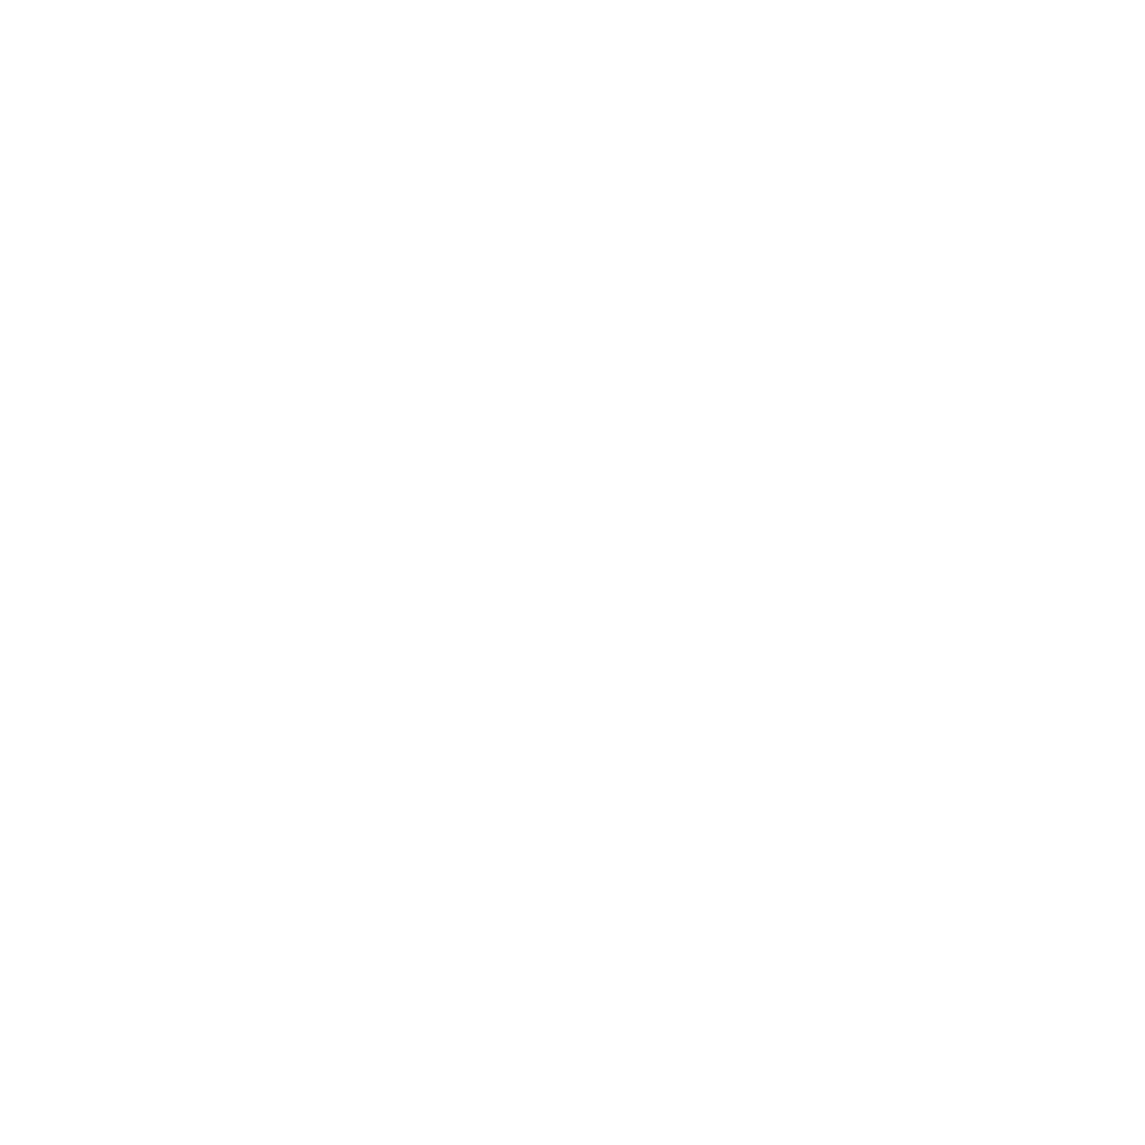 eCommerce Web Design for the Best Web Design in Nashville TN, Horton Group who also provides Nashville SEO, Inbound Marketing and Web Support.